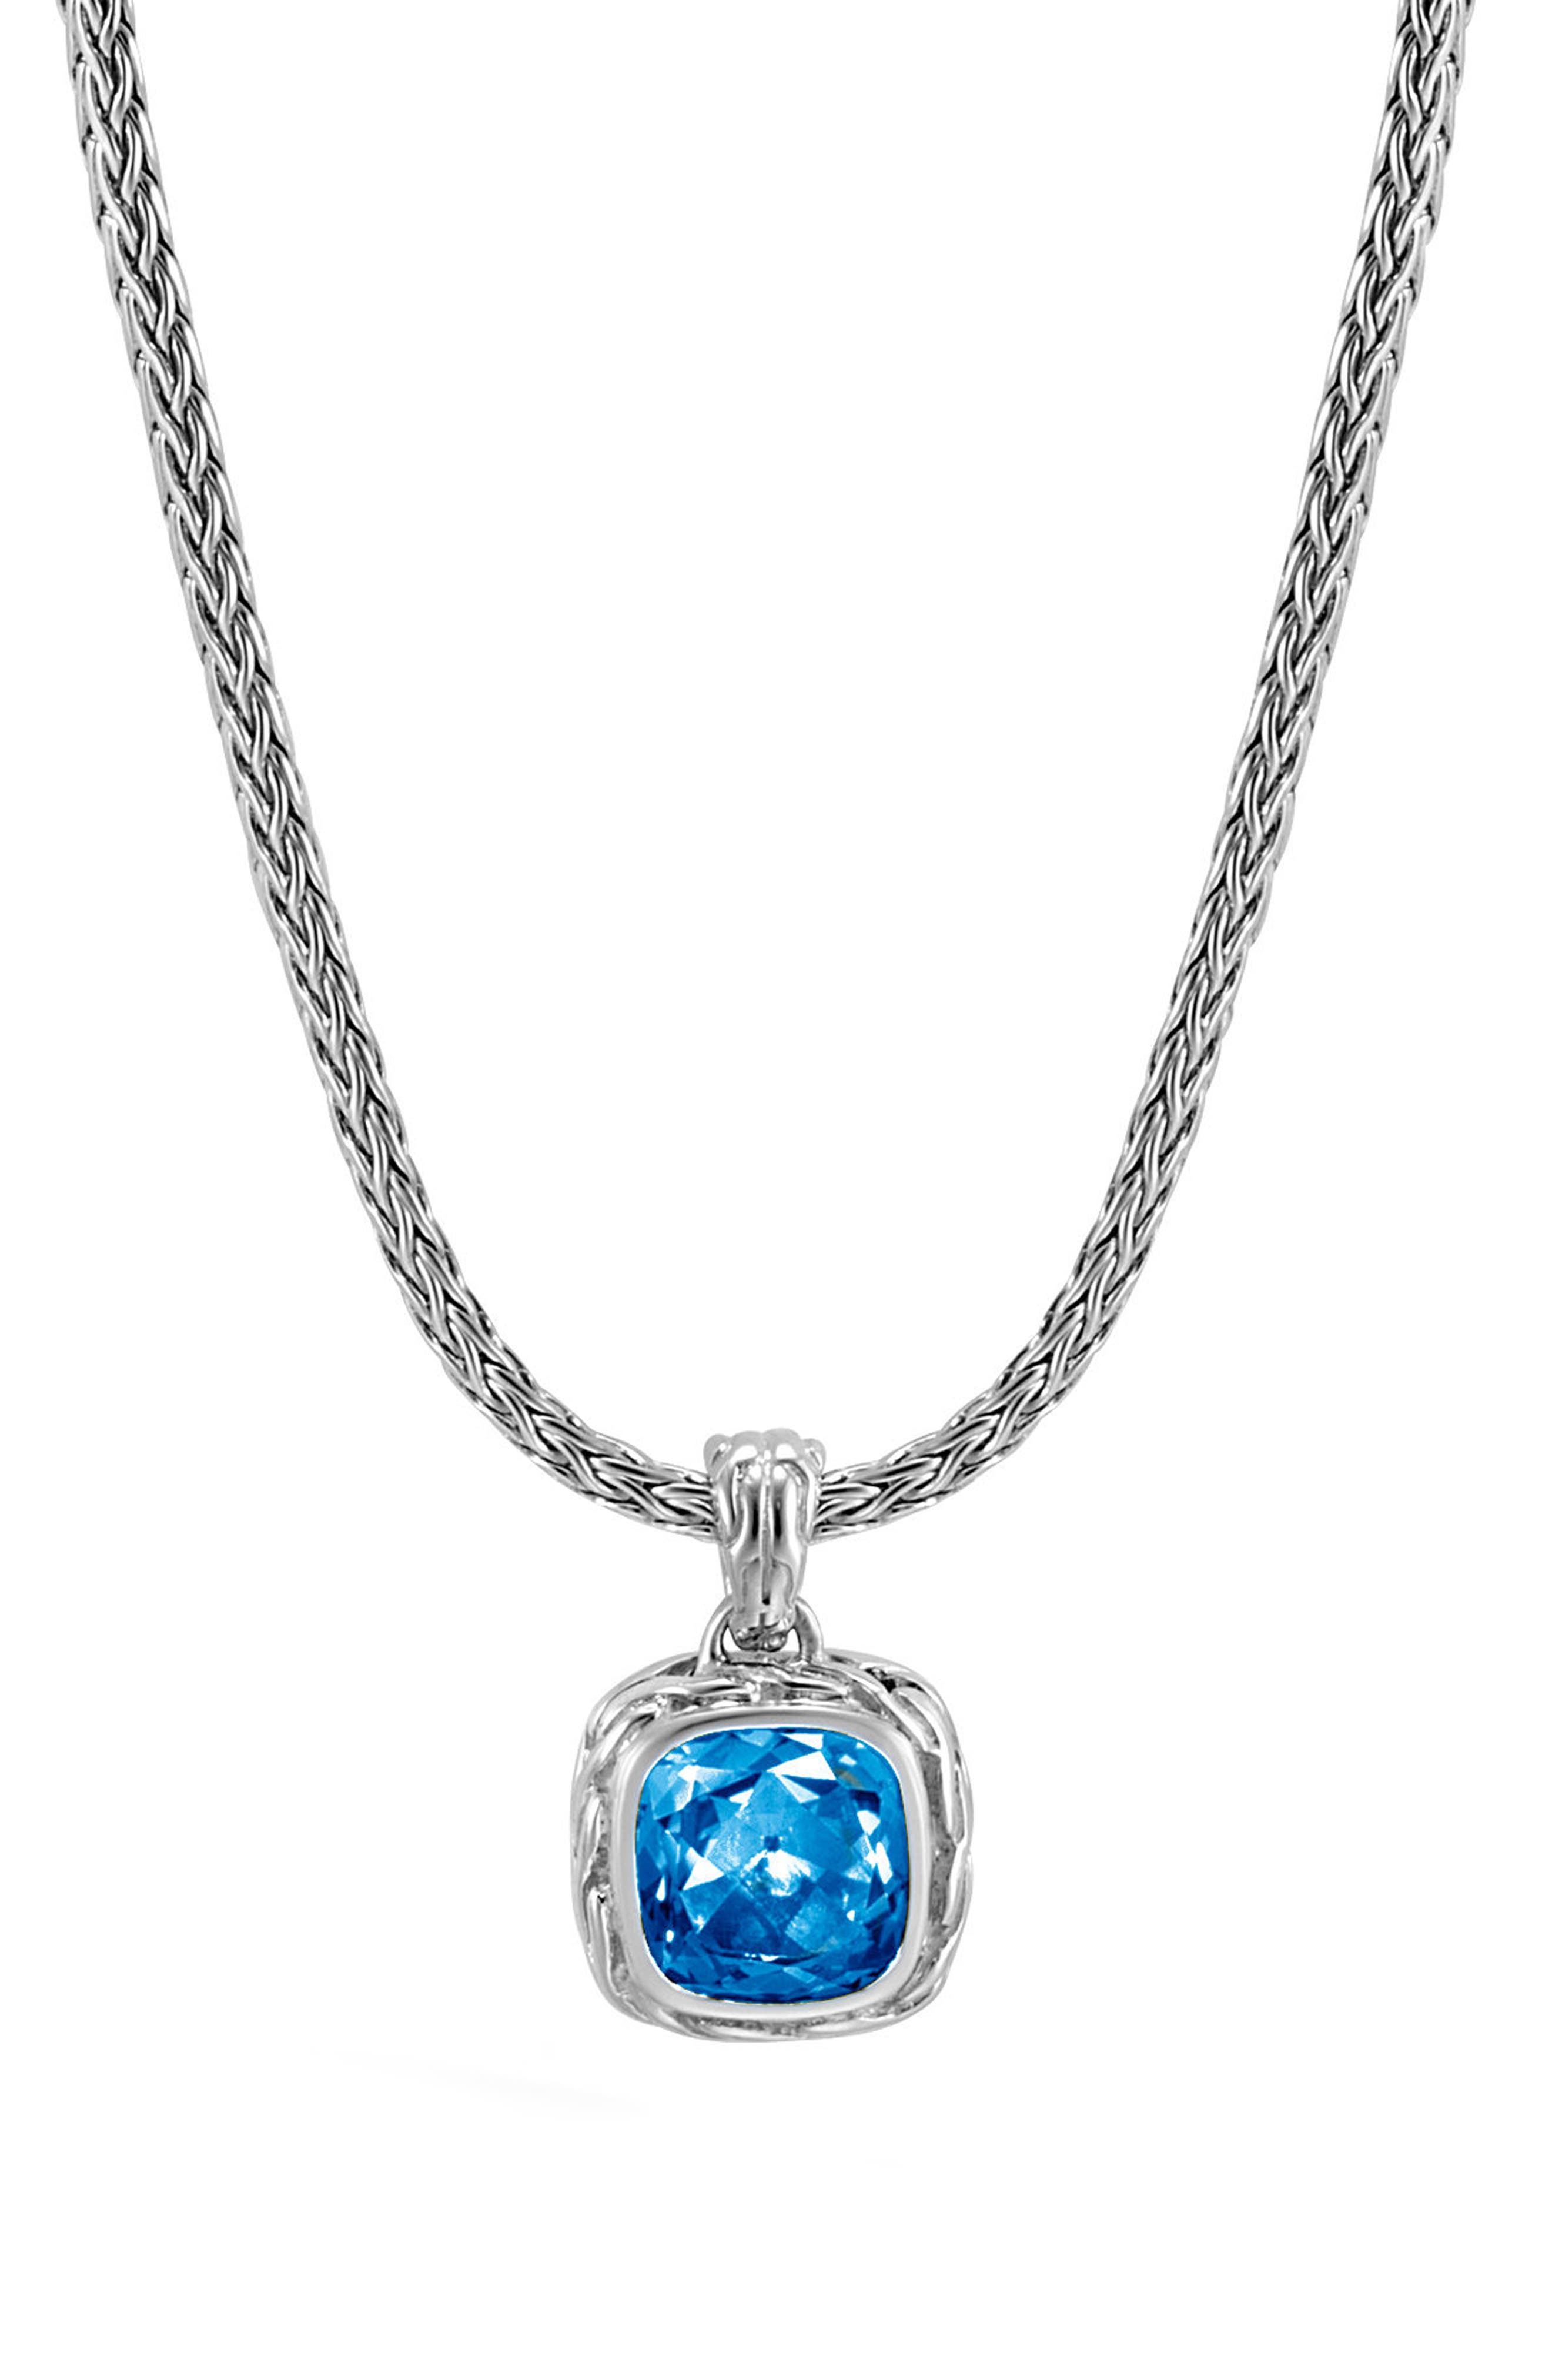 Magic Cut Blue Topaz Pendant Necklace,                             Main thumbnail 1, color,                             SILVER/ LONDON BLUE TOPAZ